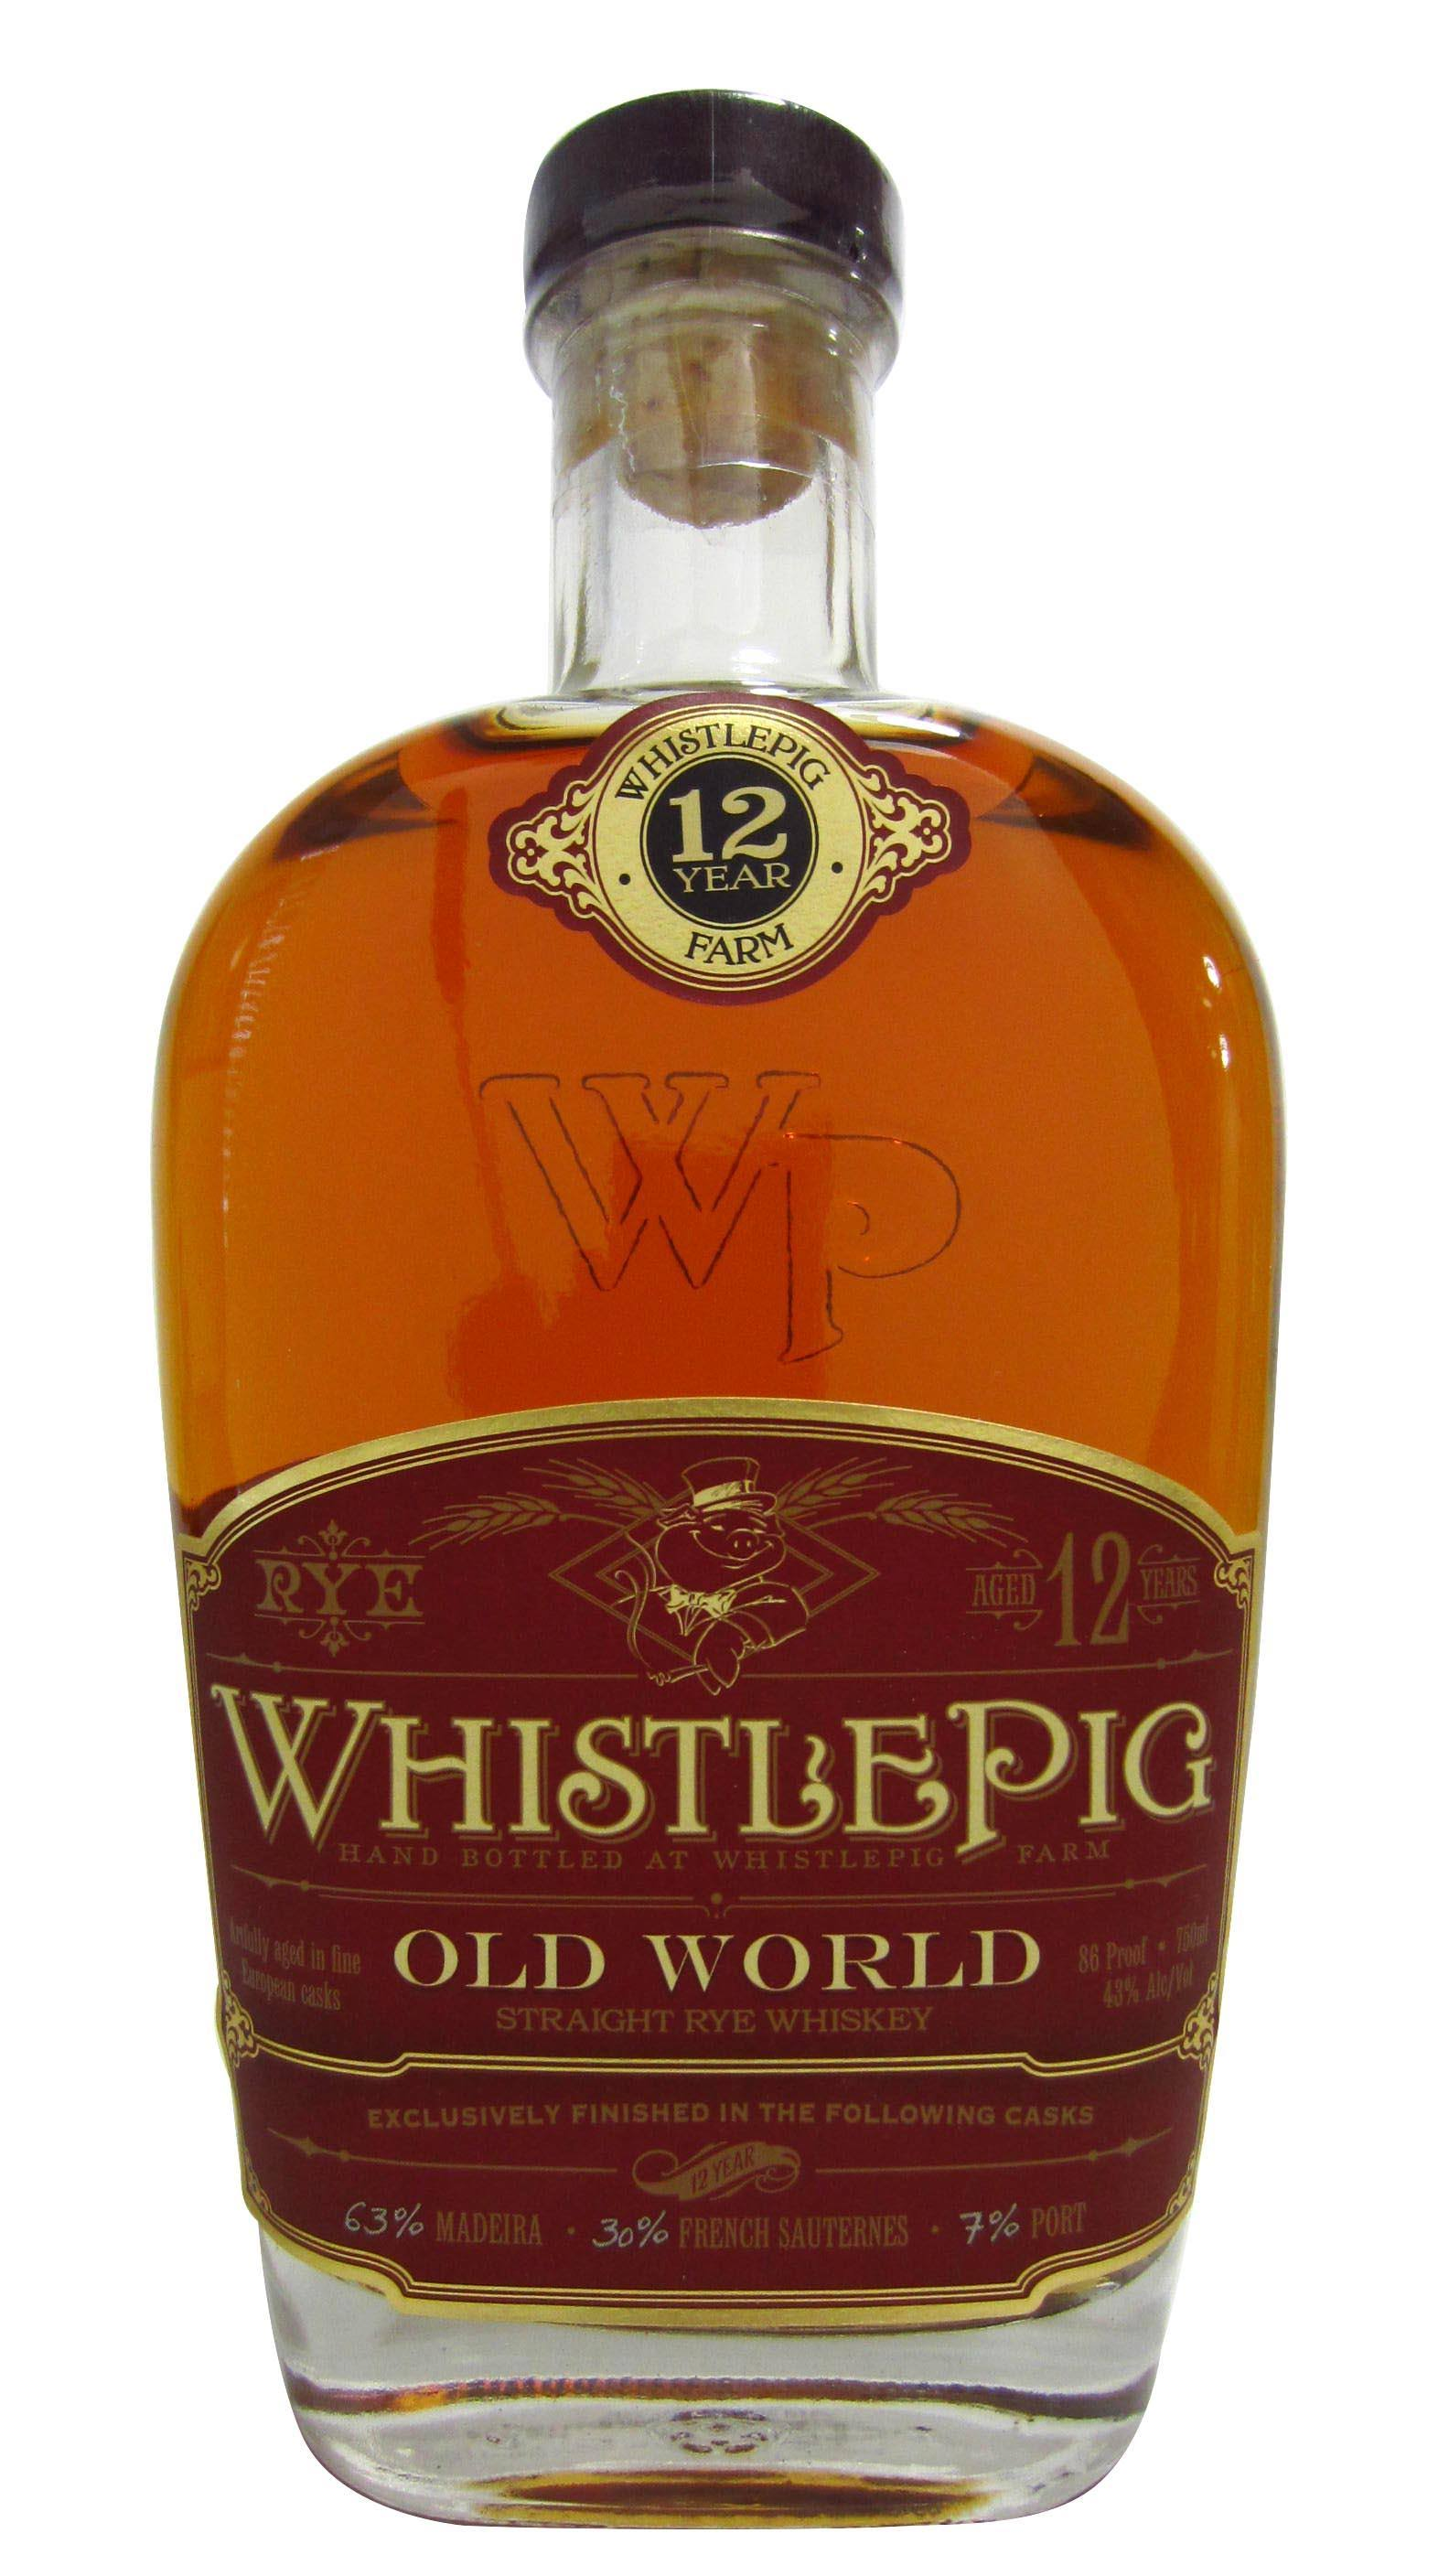 Whistlepig 12 Year Old World Rye Whiskey - 750 ml bottle